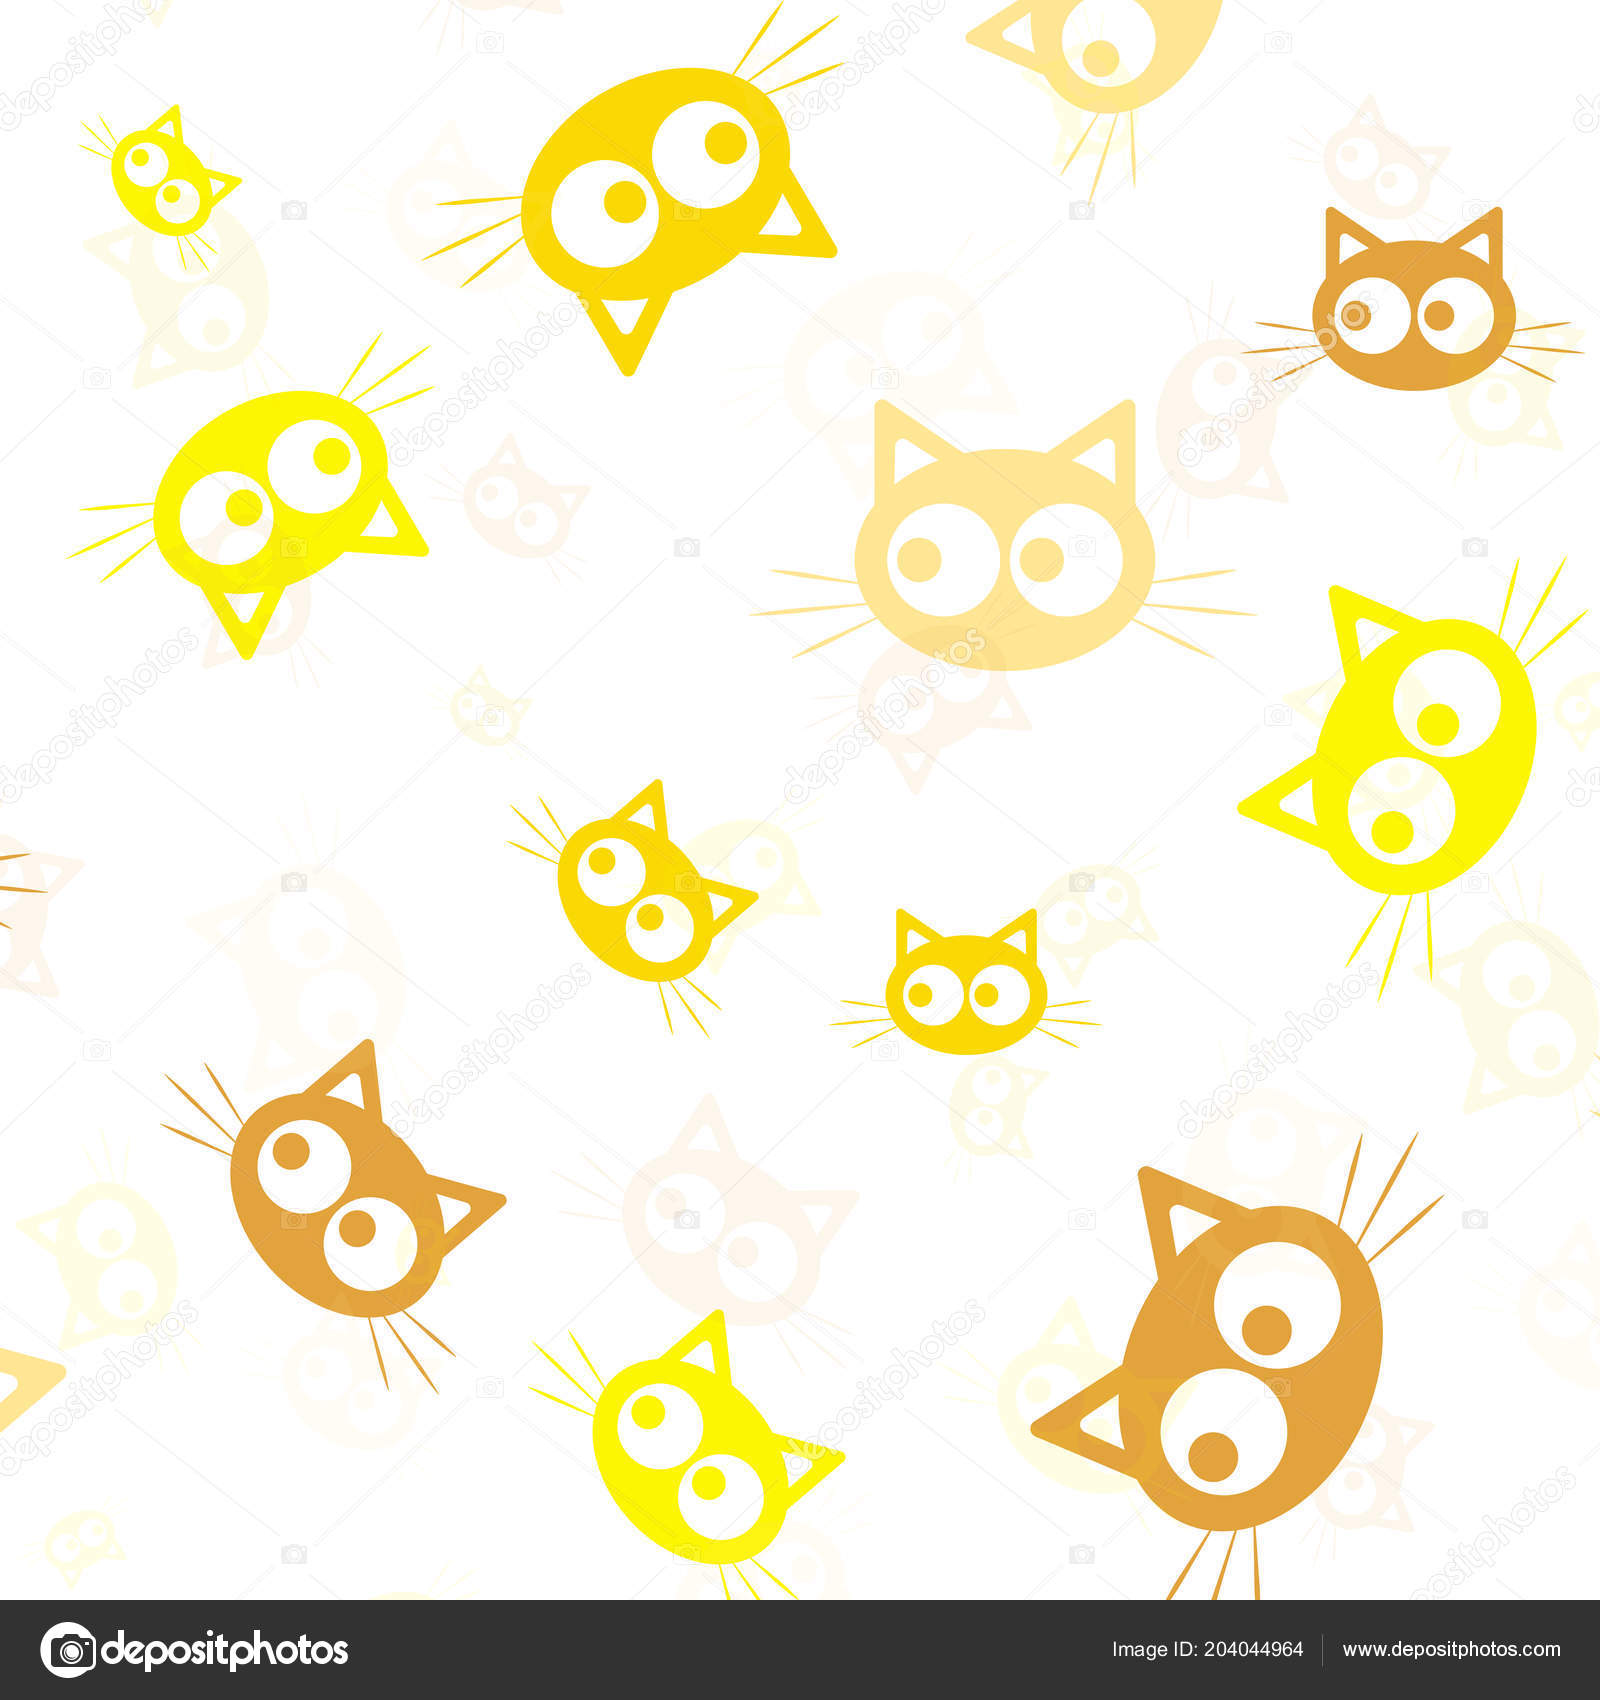 Animal Design Animal Silhouette Wallpaper And Fabric Design And Decor Vector